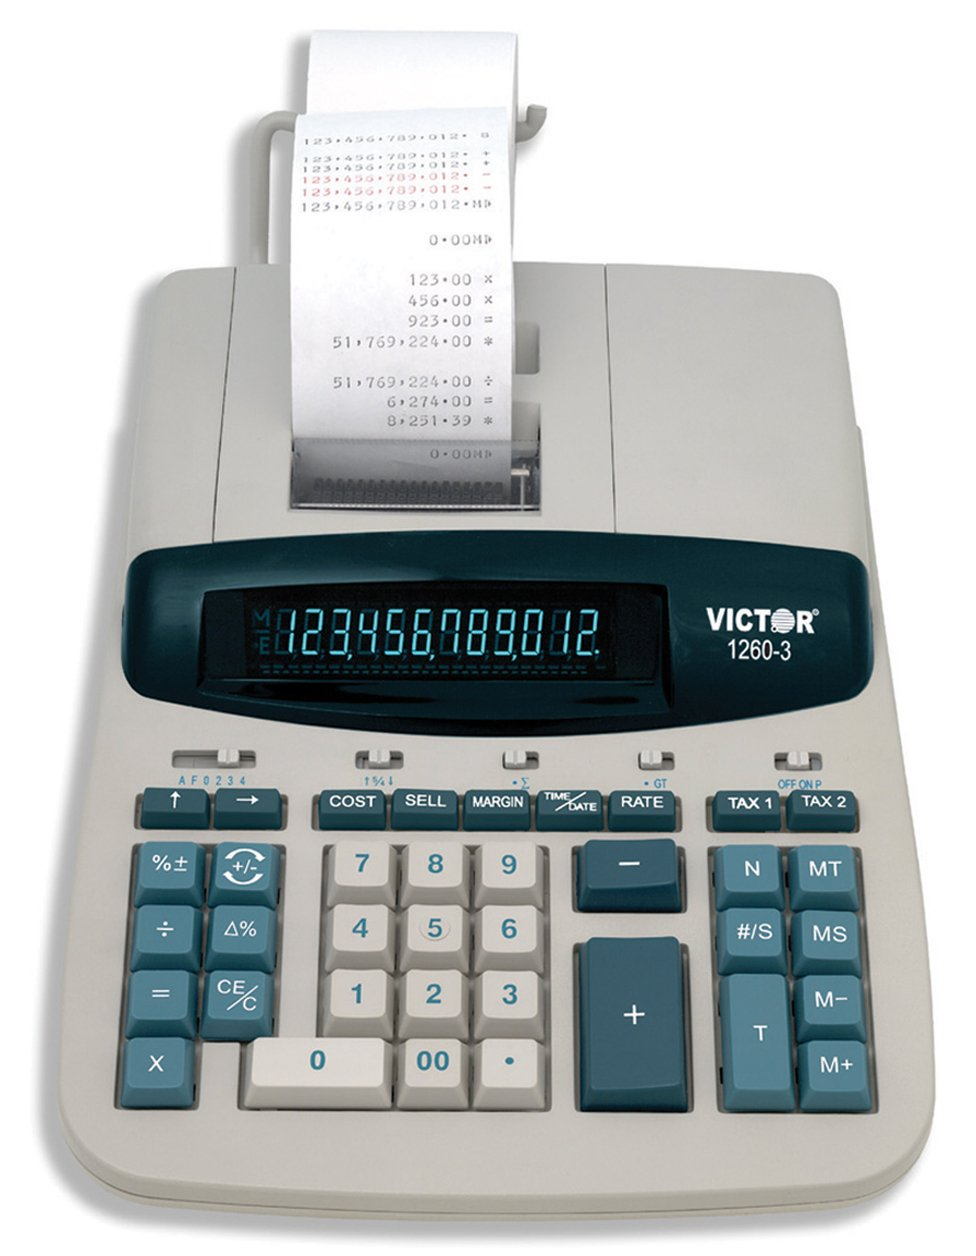 Victor 1260-3 12 Digit Heavy Duty Commercial Printing Calculator by Victor